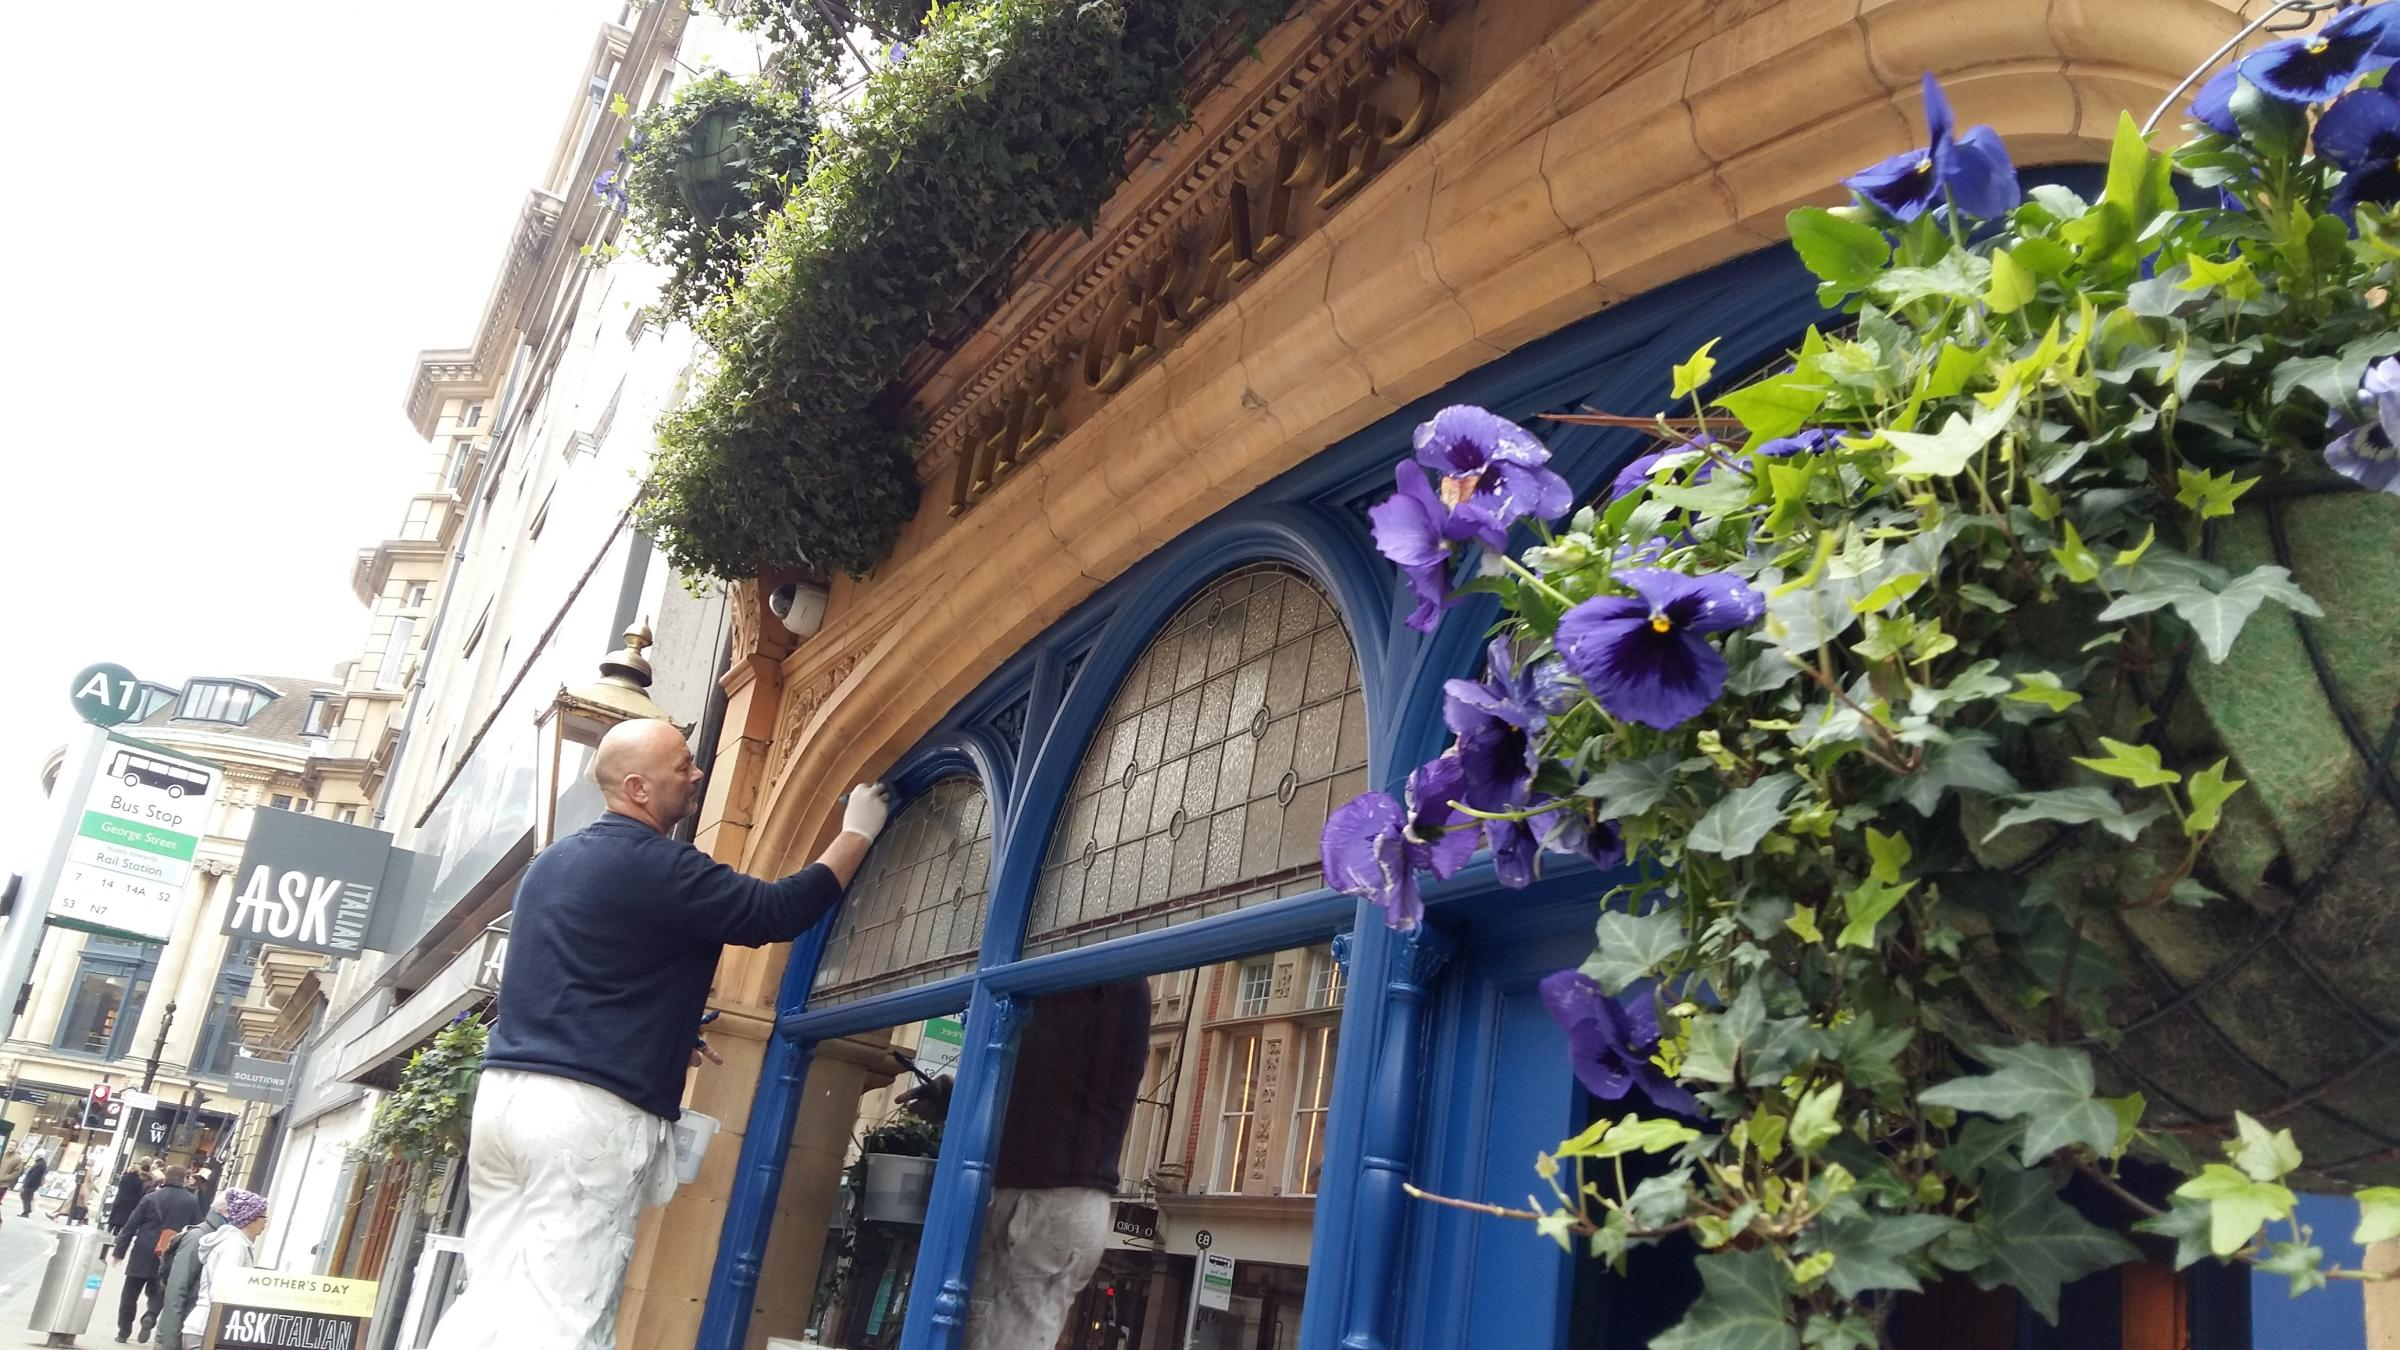 The Grapes in George Street is now bright blue